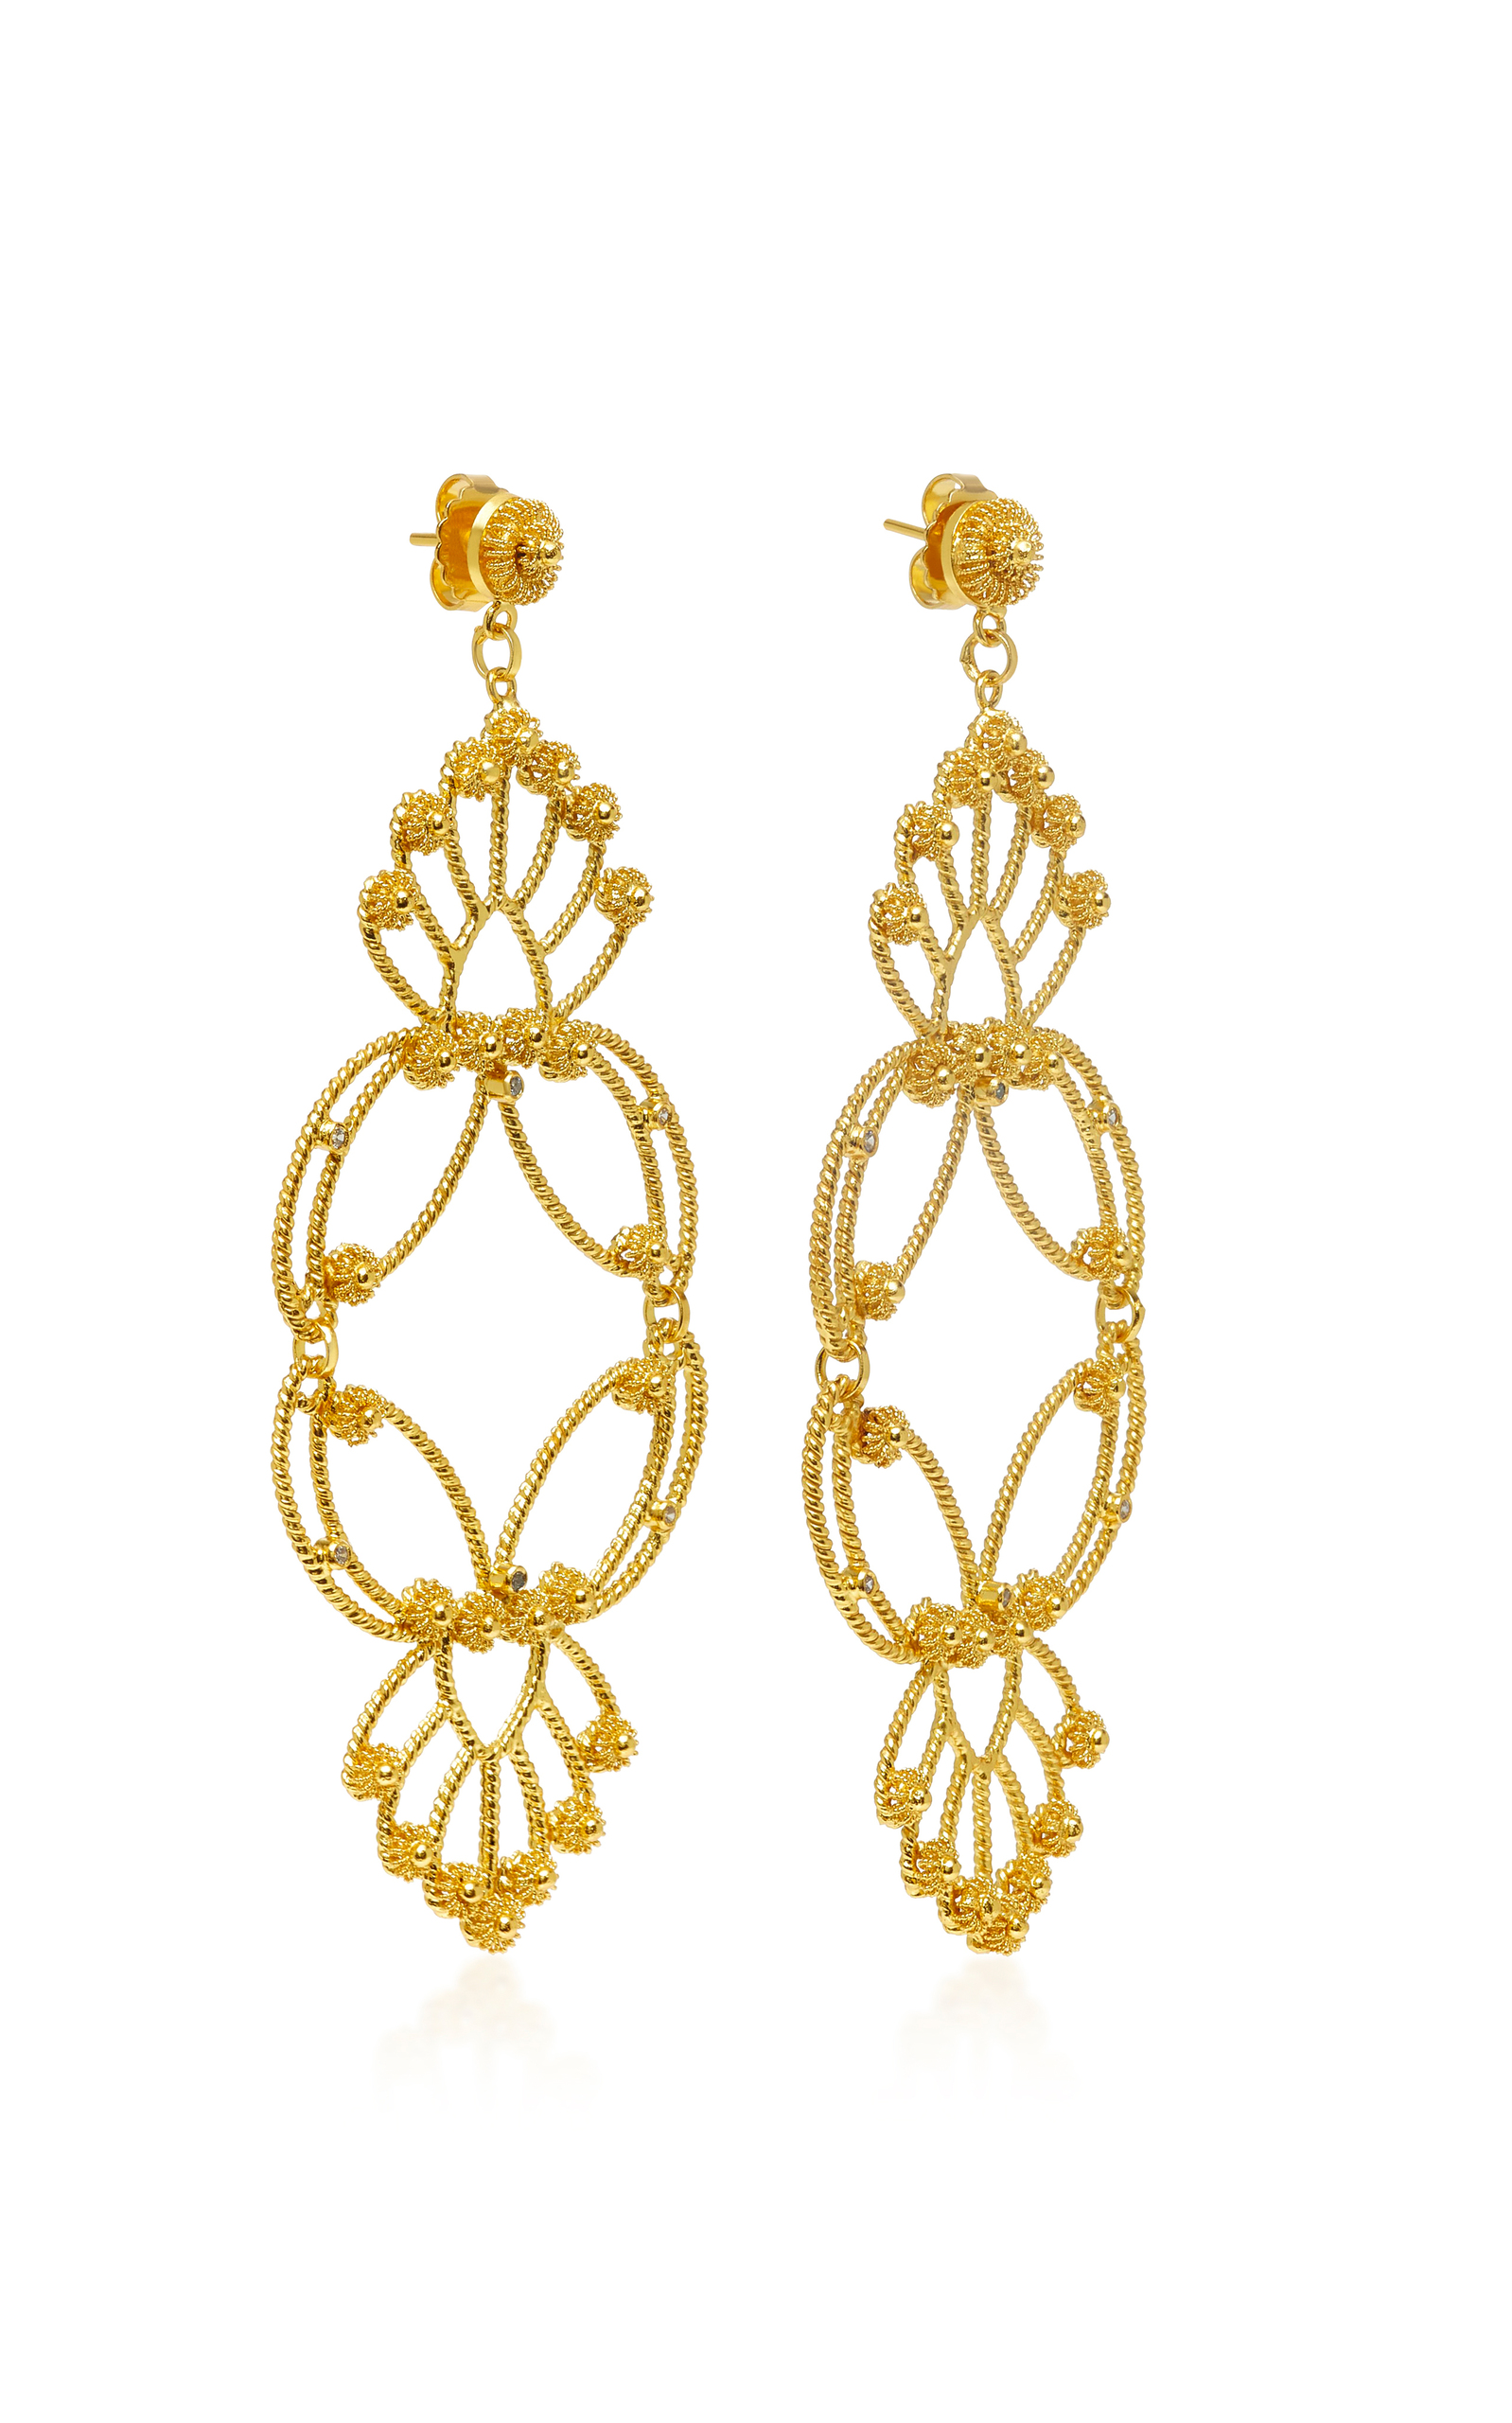 earrings co e maire product lombia lema gold emerald gp colombian tiora